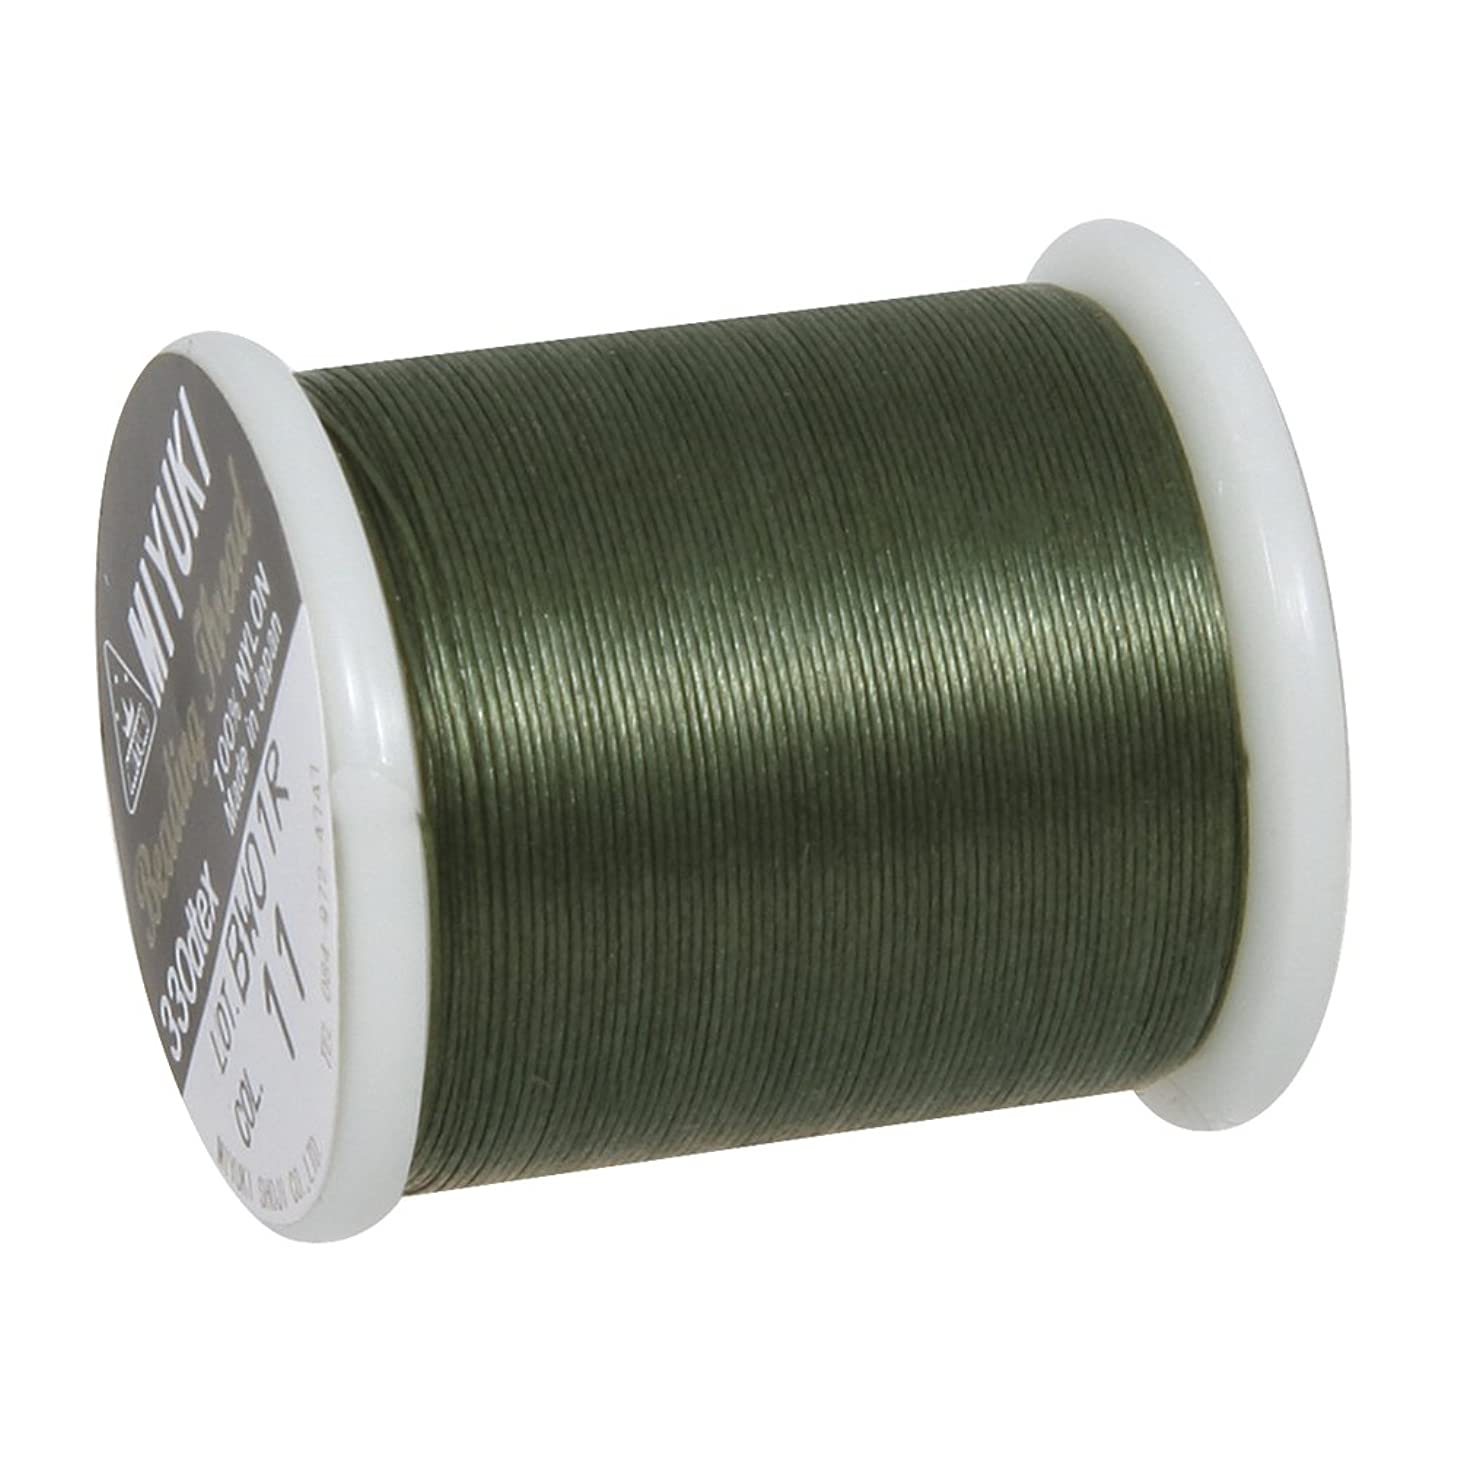 RAYHER 89300456?Threading Thread for Delica Seed Beads 0.27?mm Diameter?–?Bag of 50?m, Olive